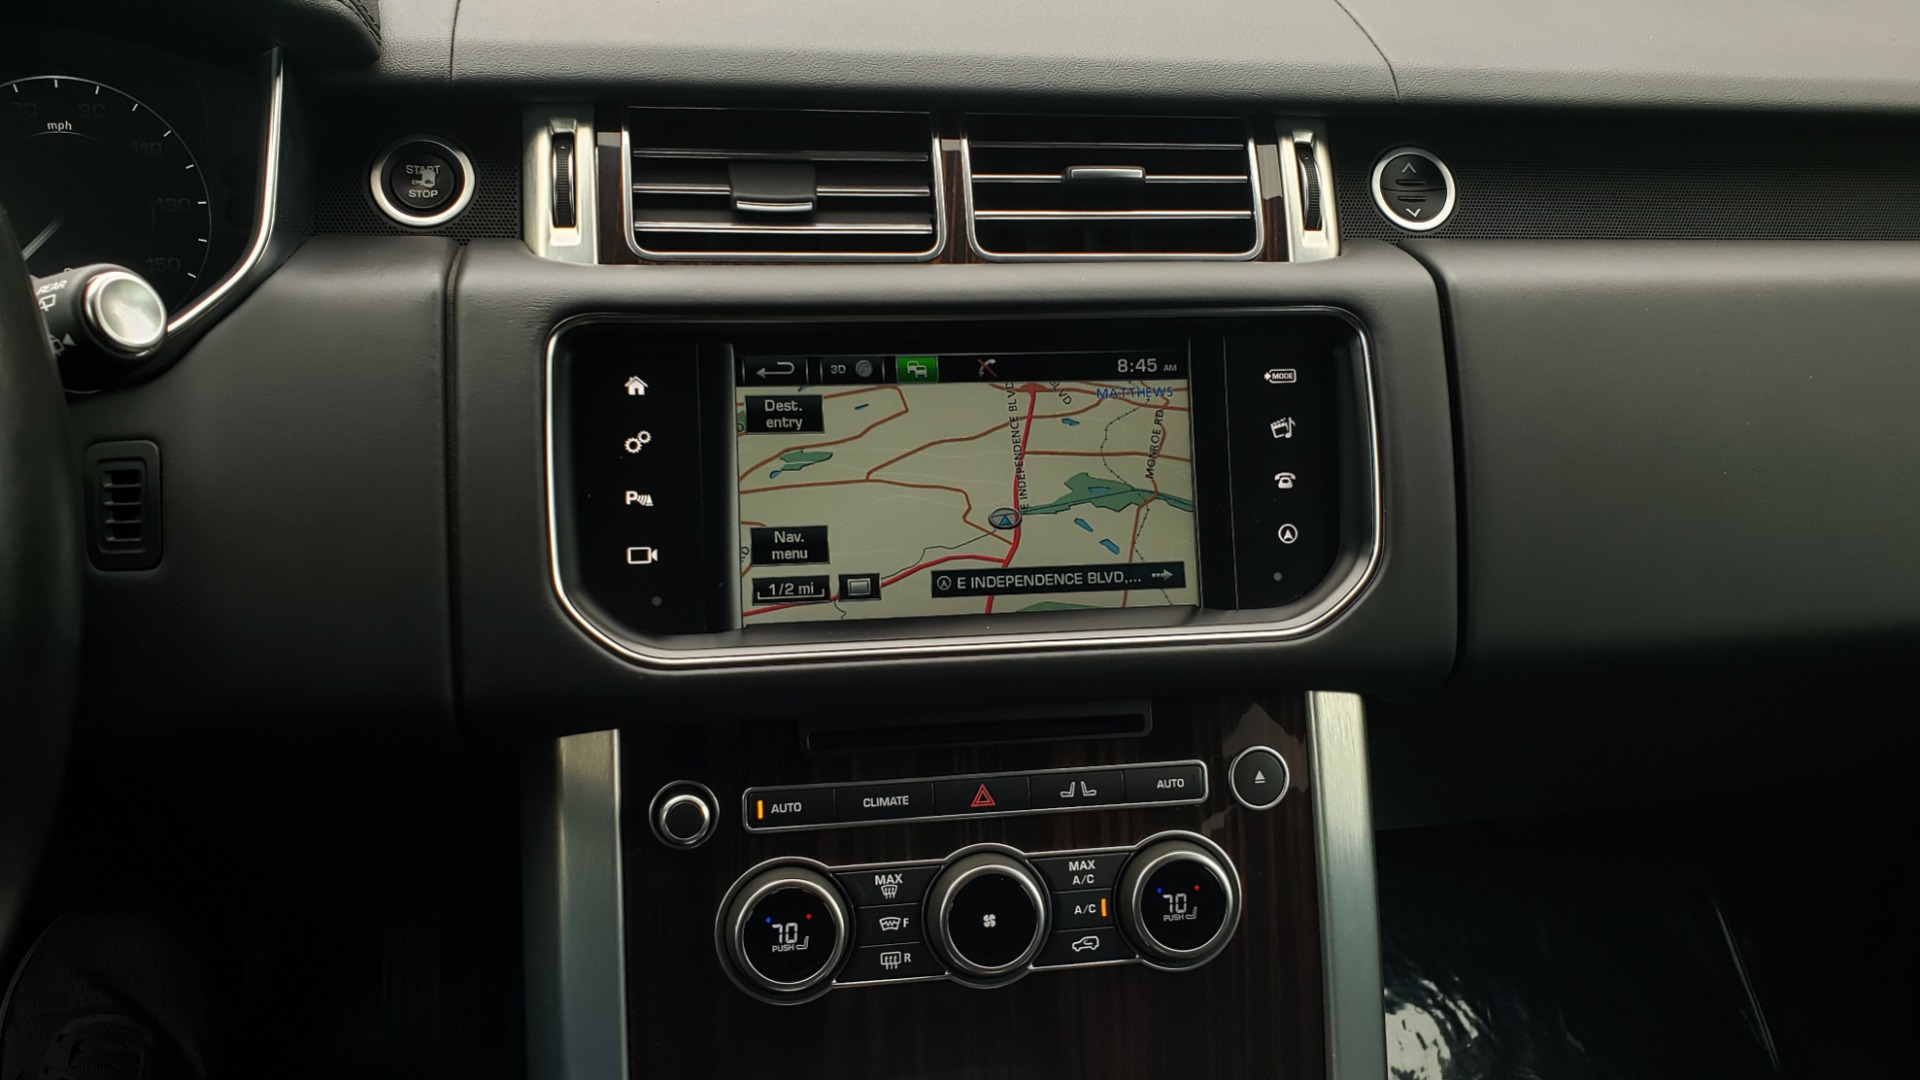 Used 2016 Land Rover Range Rover HSE 3.0L SC V6 / NAV / PANO-ROOF / VENT SEATS / REARVIEW / BLIND SPOT for sale Sold at Formula Imports in Charlotte NC 28227 49